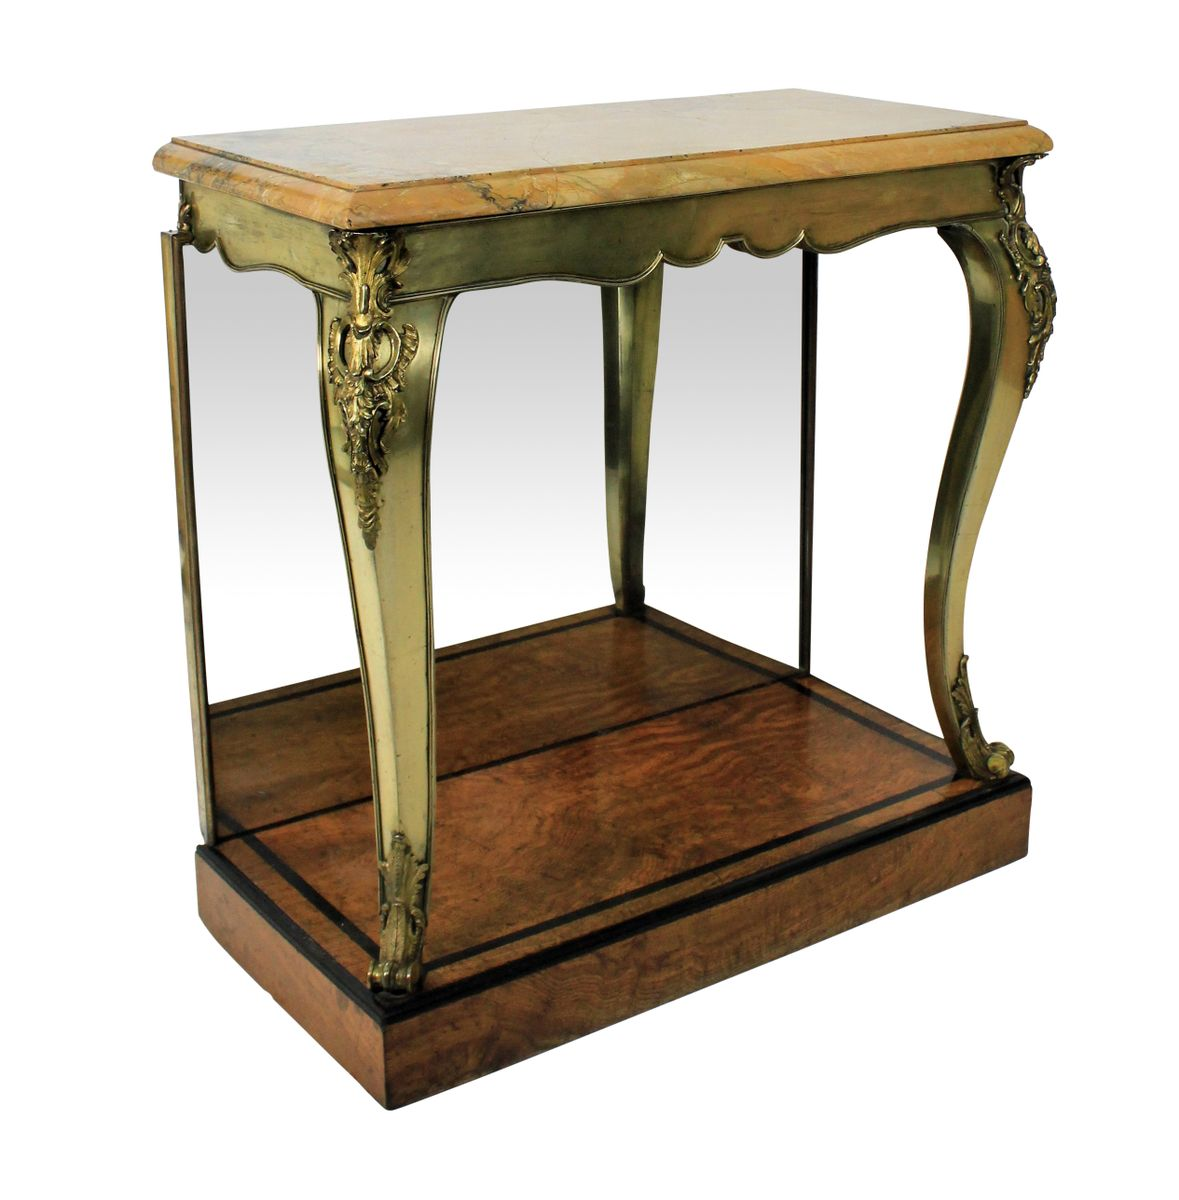 Antique British Gilt Bronze Console Table